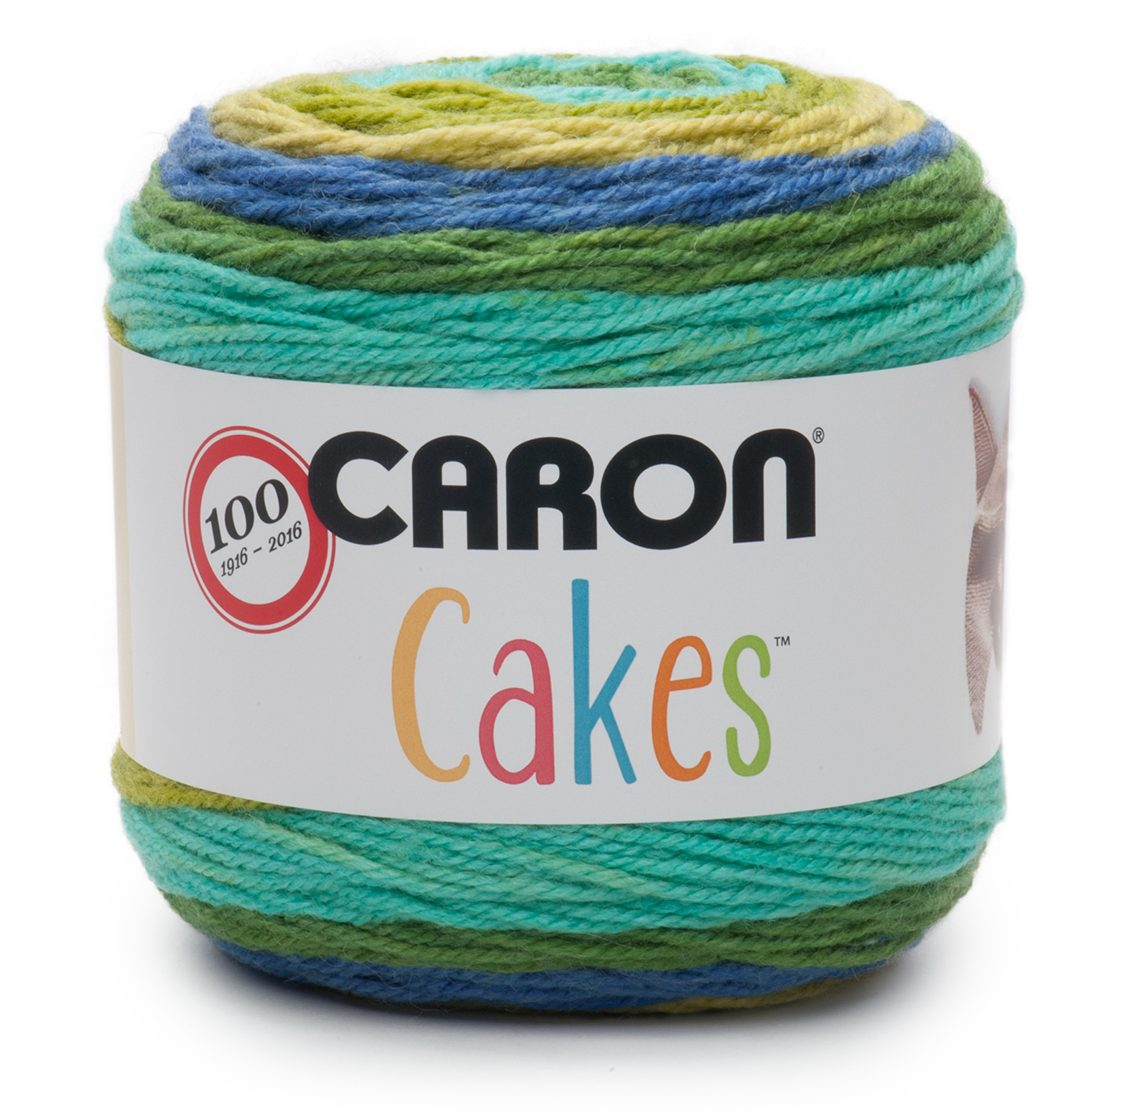 NEW Caron Cakes Blueberry Kiwi Yarn - one of 8 new colorways for 2017 plus free patterns featuring the original Caron Cakes colors